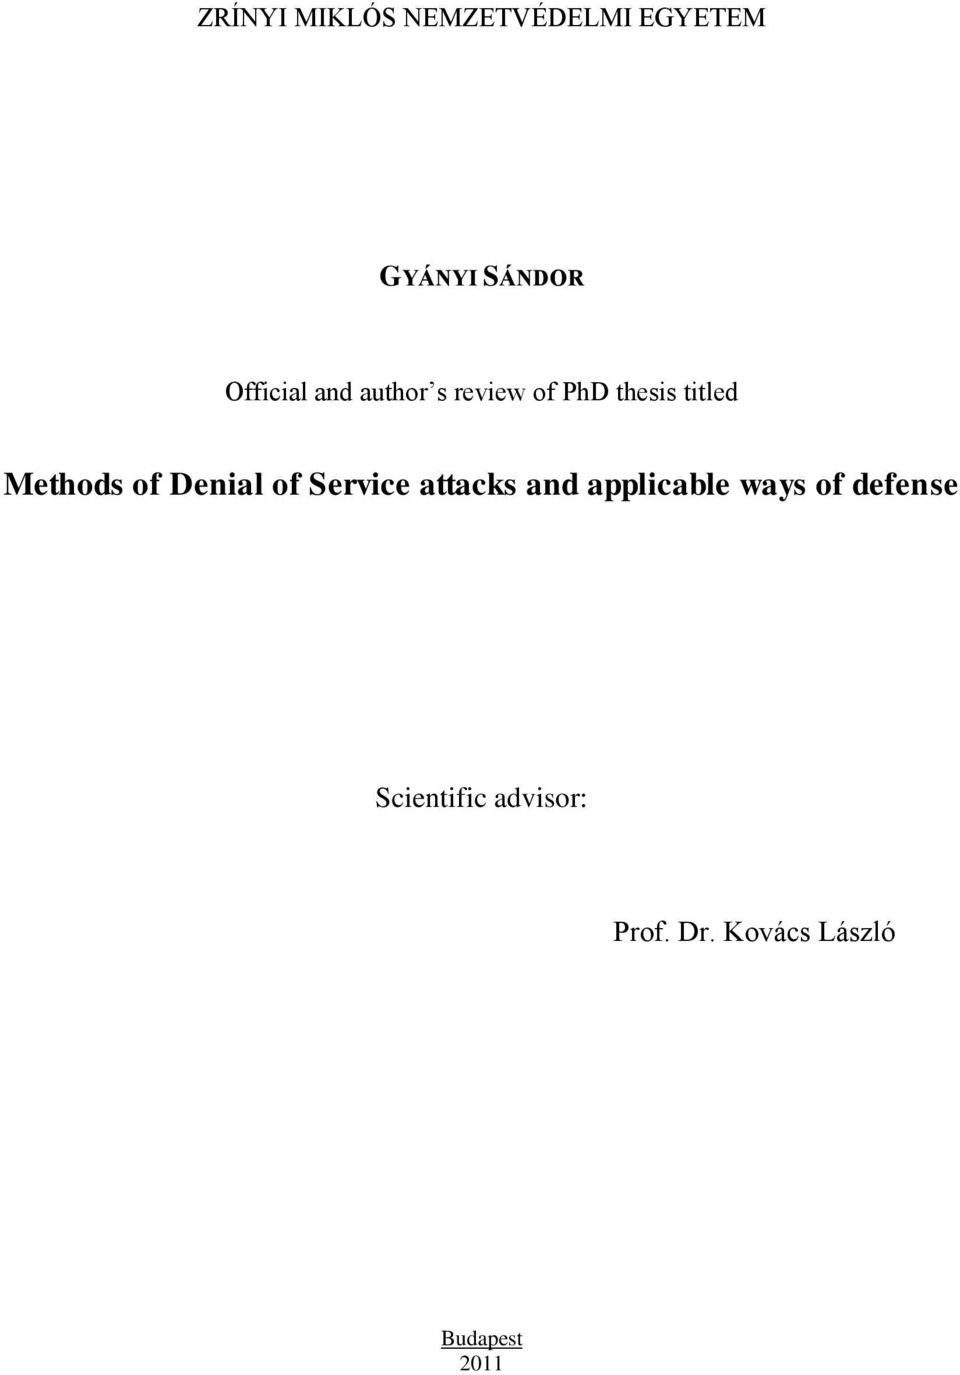 Methods of Denial of Service attacks and applicable ways